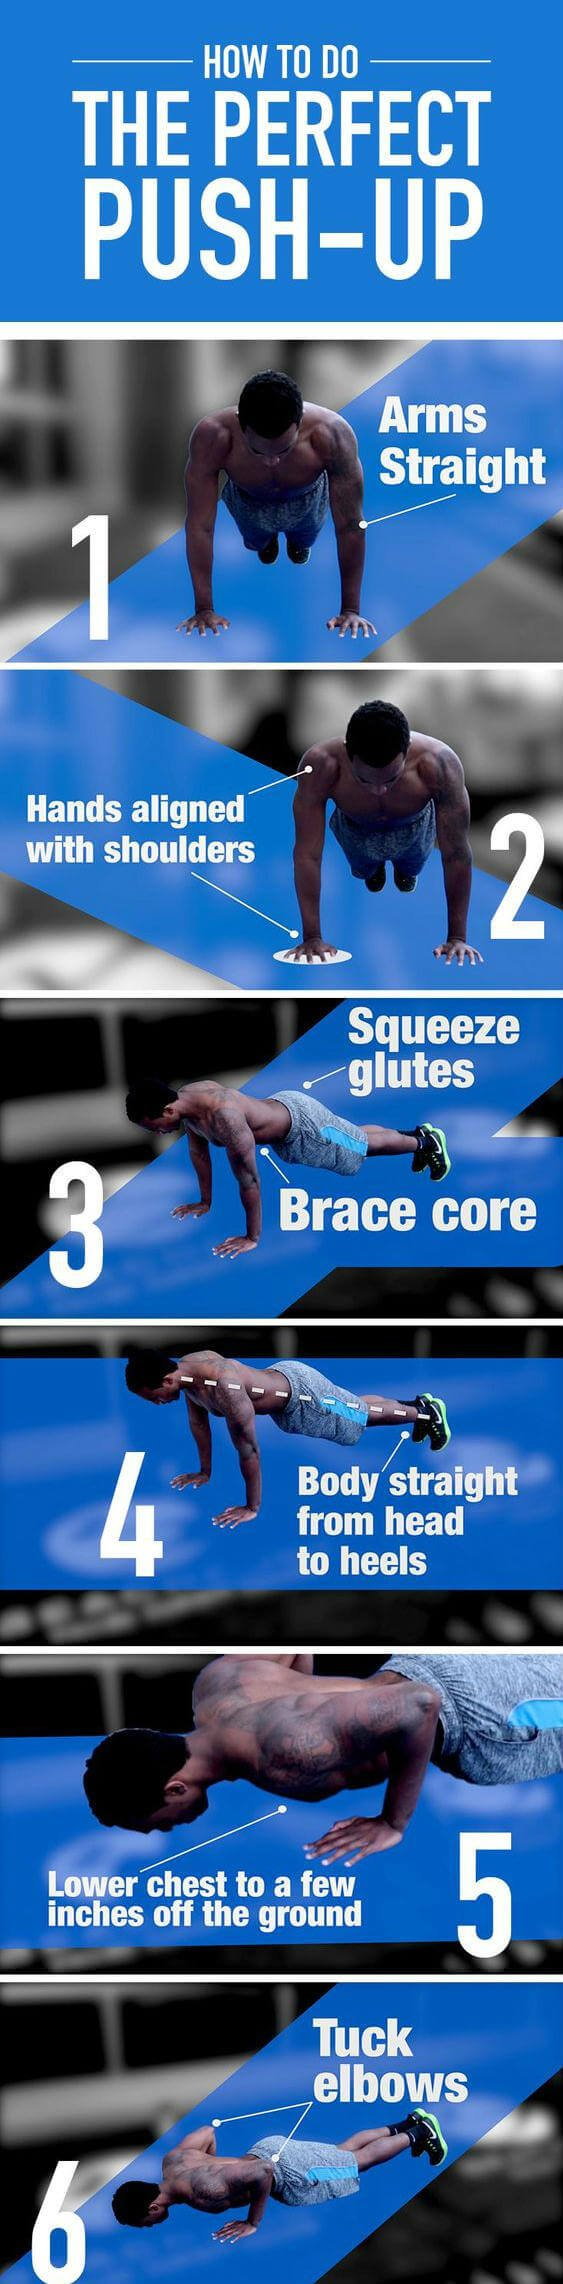 5 simple tips for mastering the perfect push up gymguider com